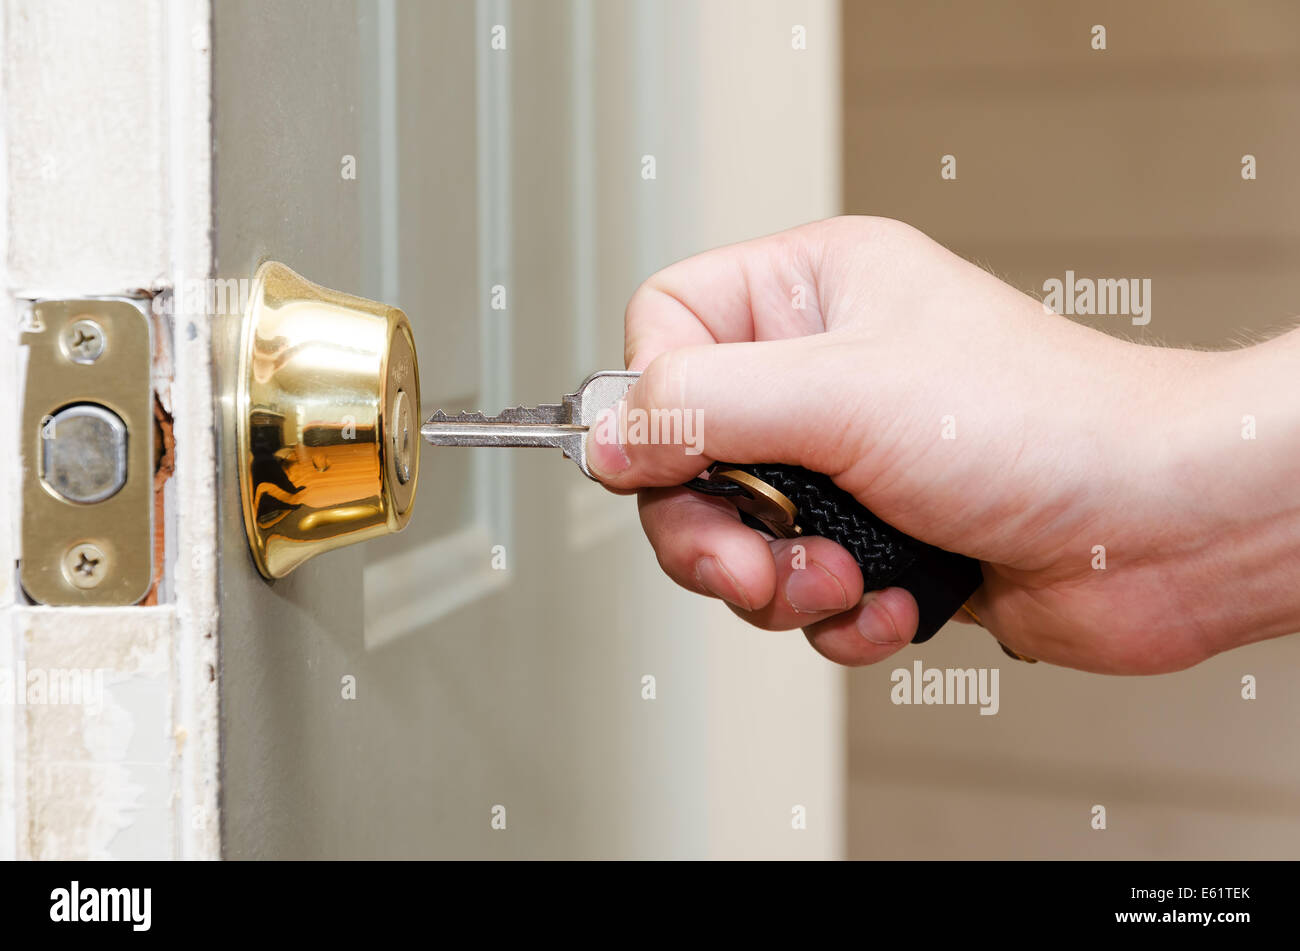 Photo Of Male Hand Putting House Key Into Front Door Lock Of House